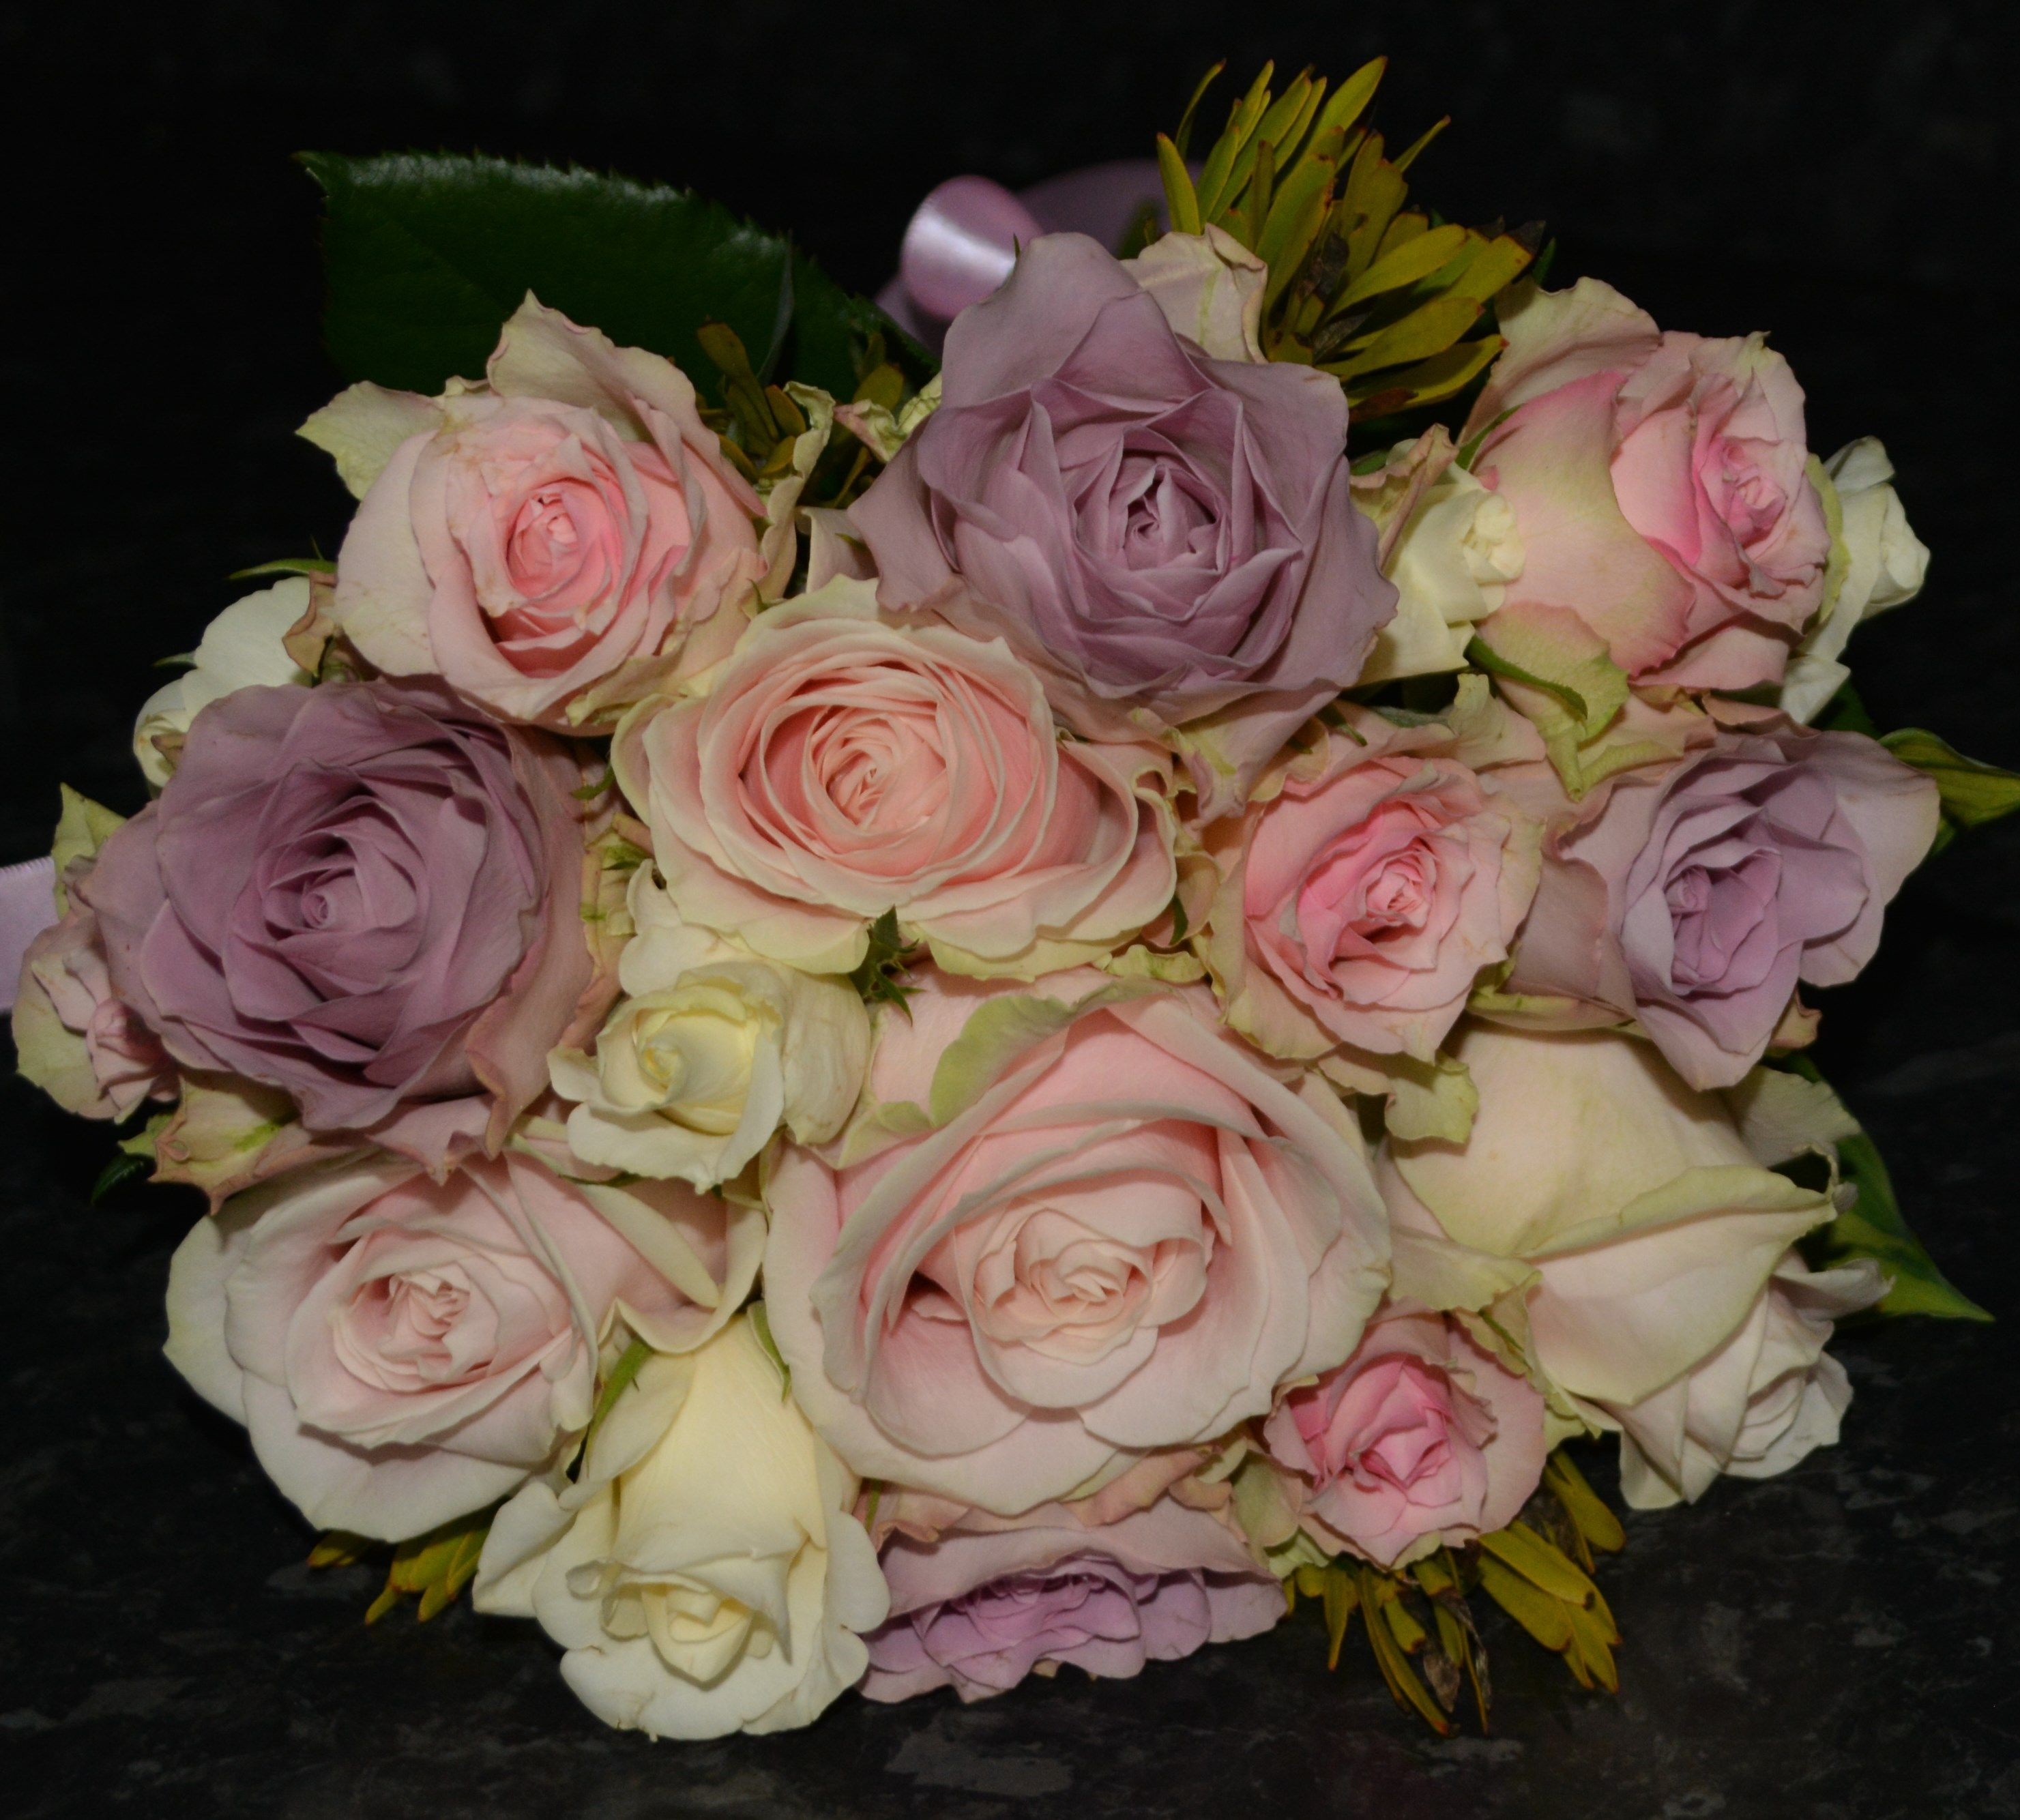 Rose Bouquet Using Memory Lane Lilac Sweet Avalanche Pink And